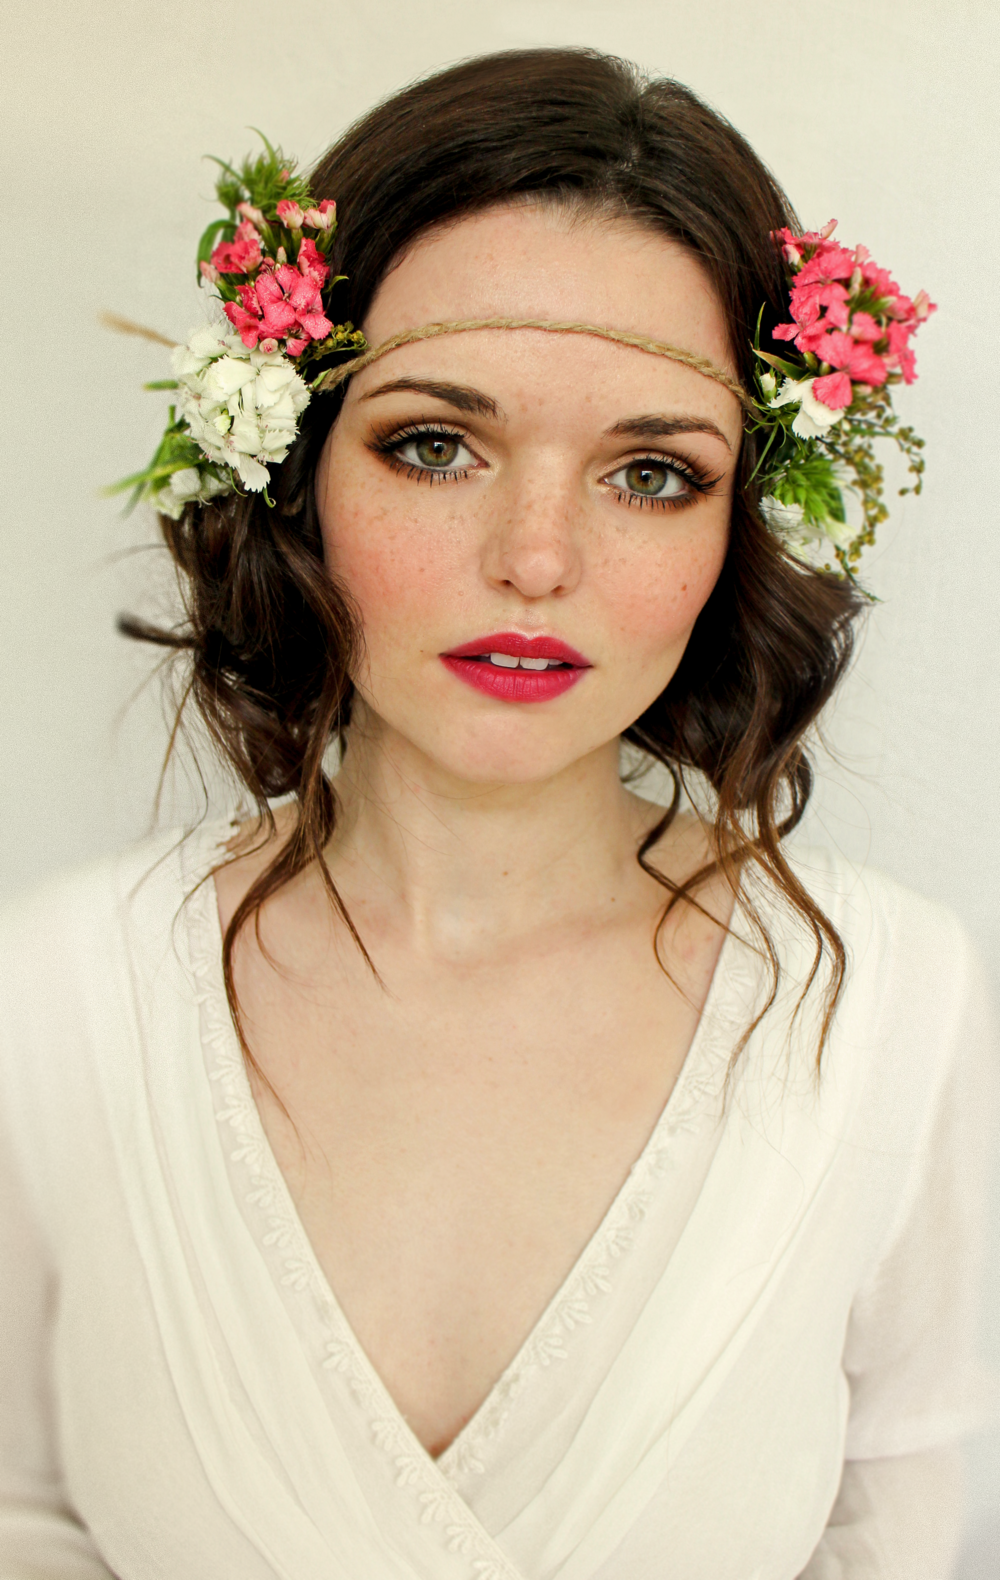 jodi pink flowers bridal hair and mKEUP.png